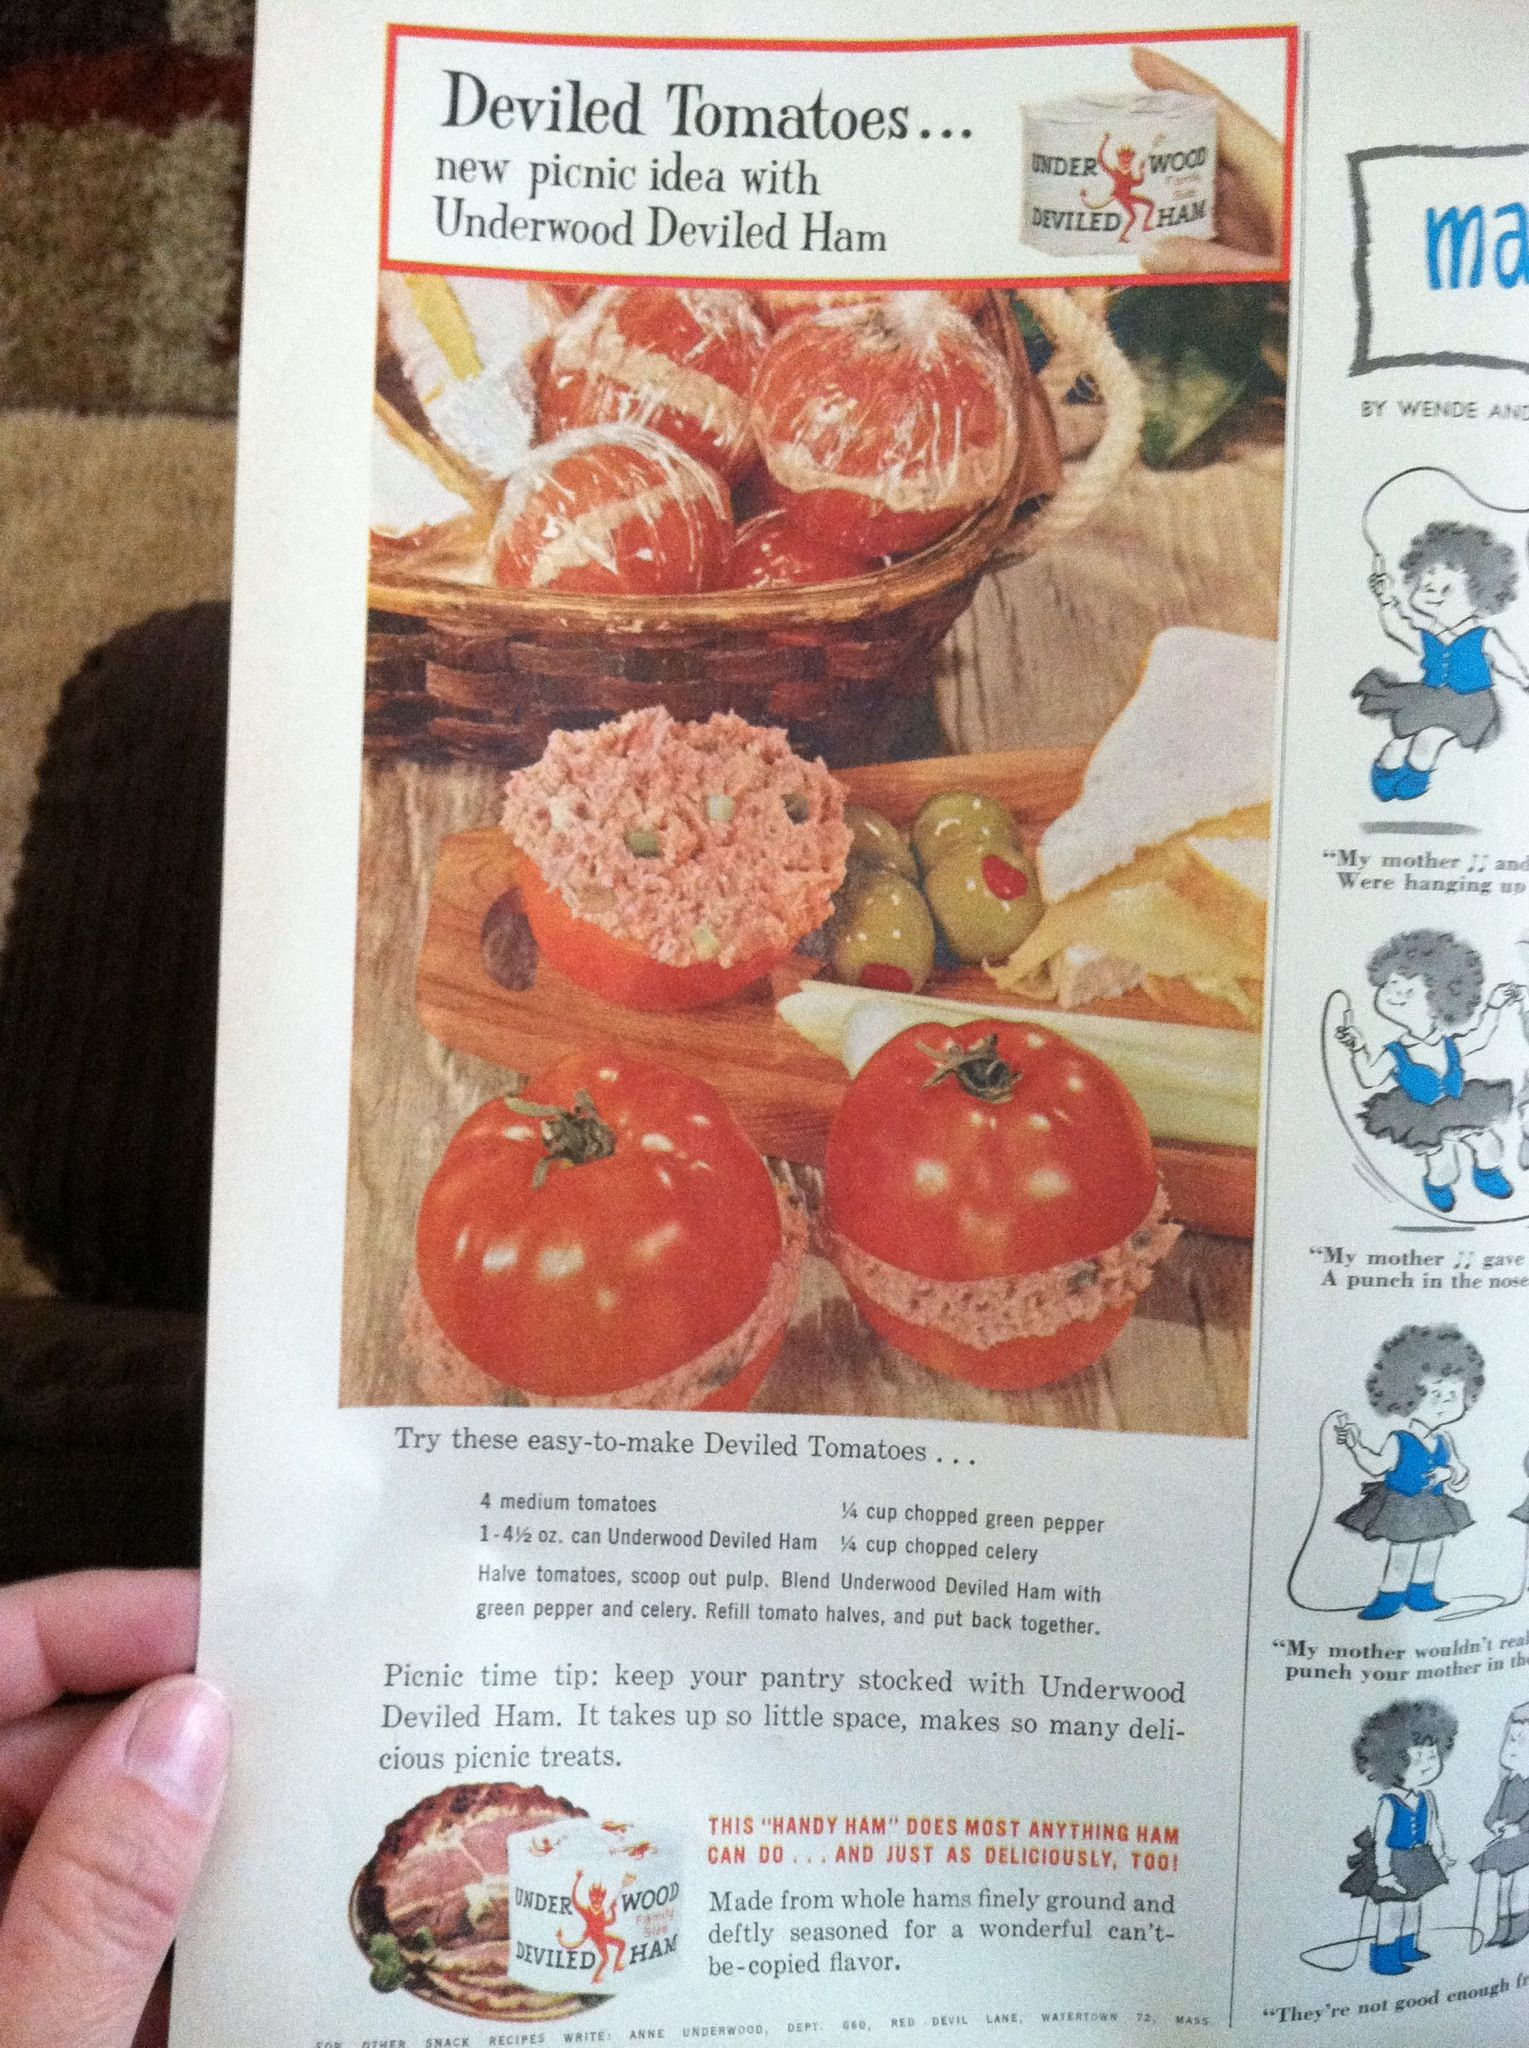 From 1950 S Good House Keeping Magazine Underwood Deviled Ham Ad W Recipe Stuffed Green Peppers Stuffed Peppers Ham